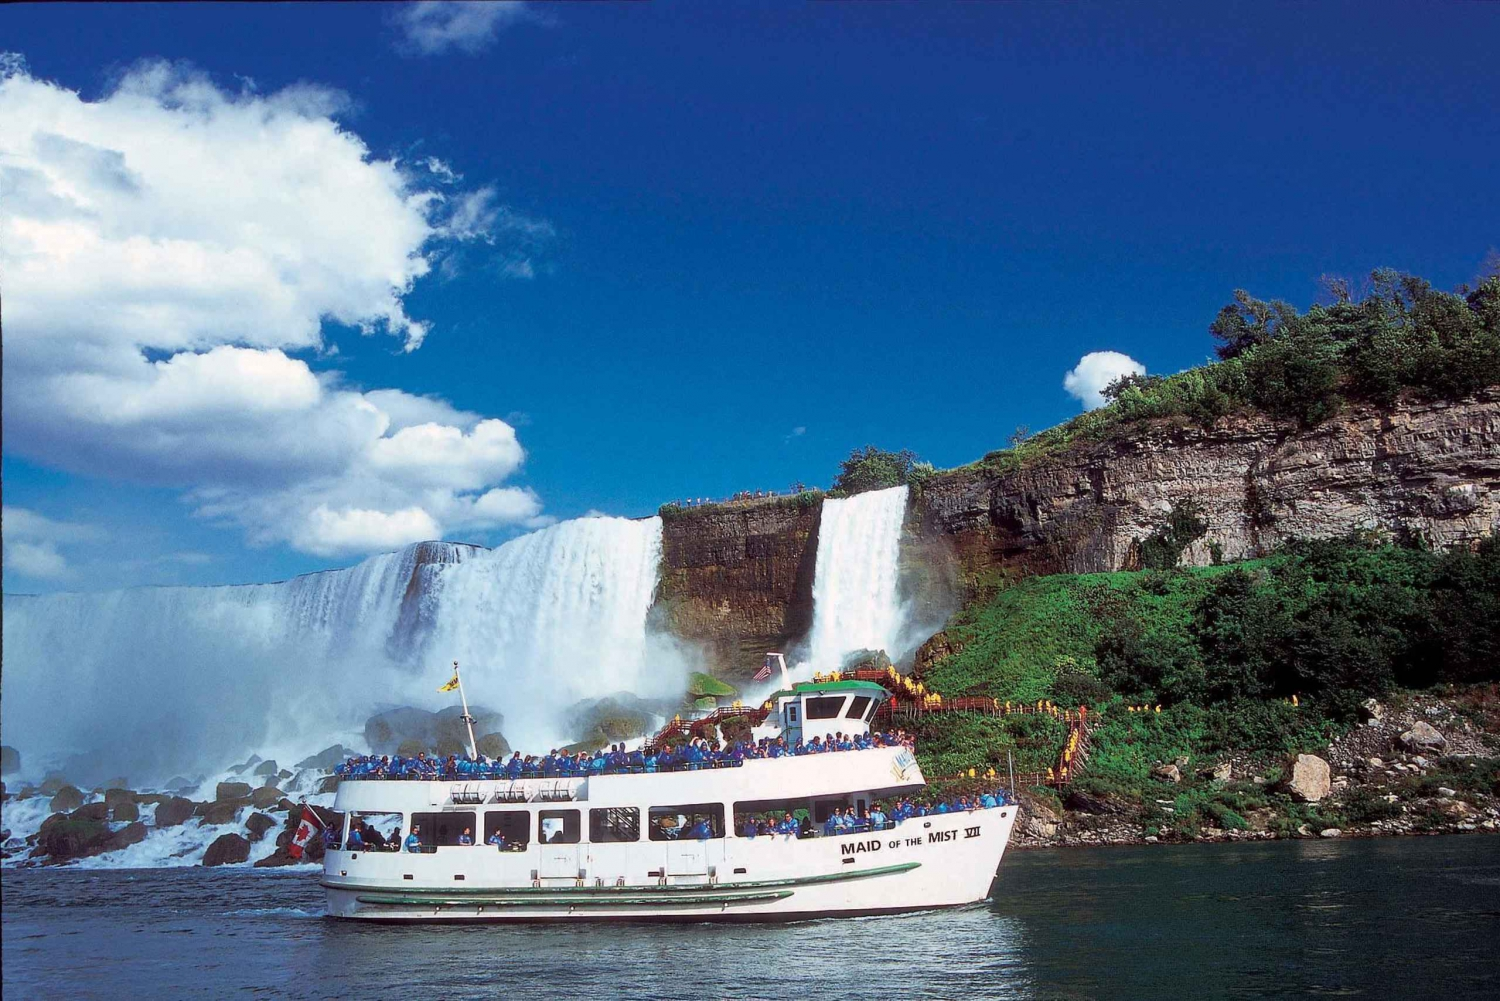 Niagara Falls USA Tour with Cave of the Winds and Boat Ride